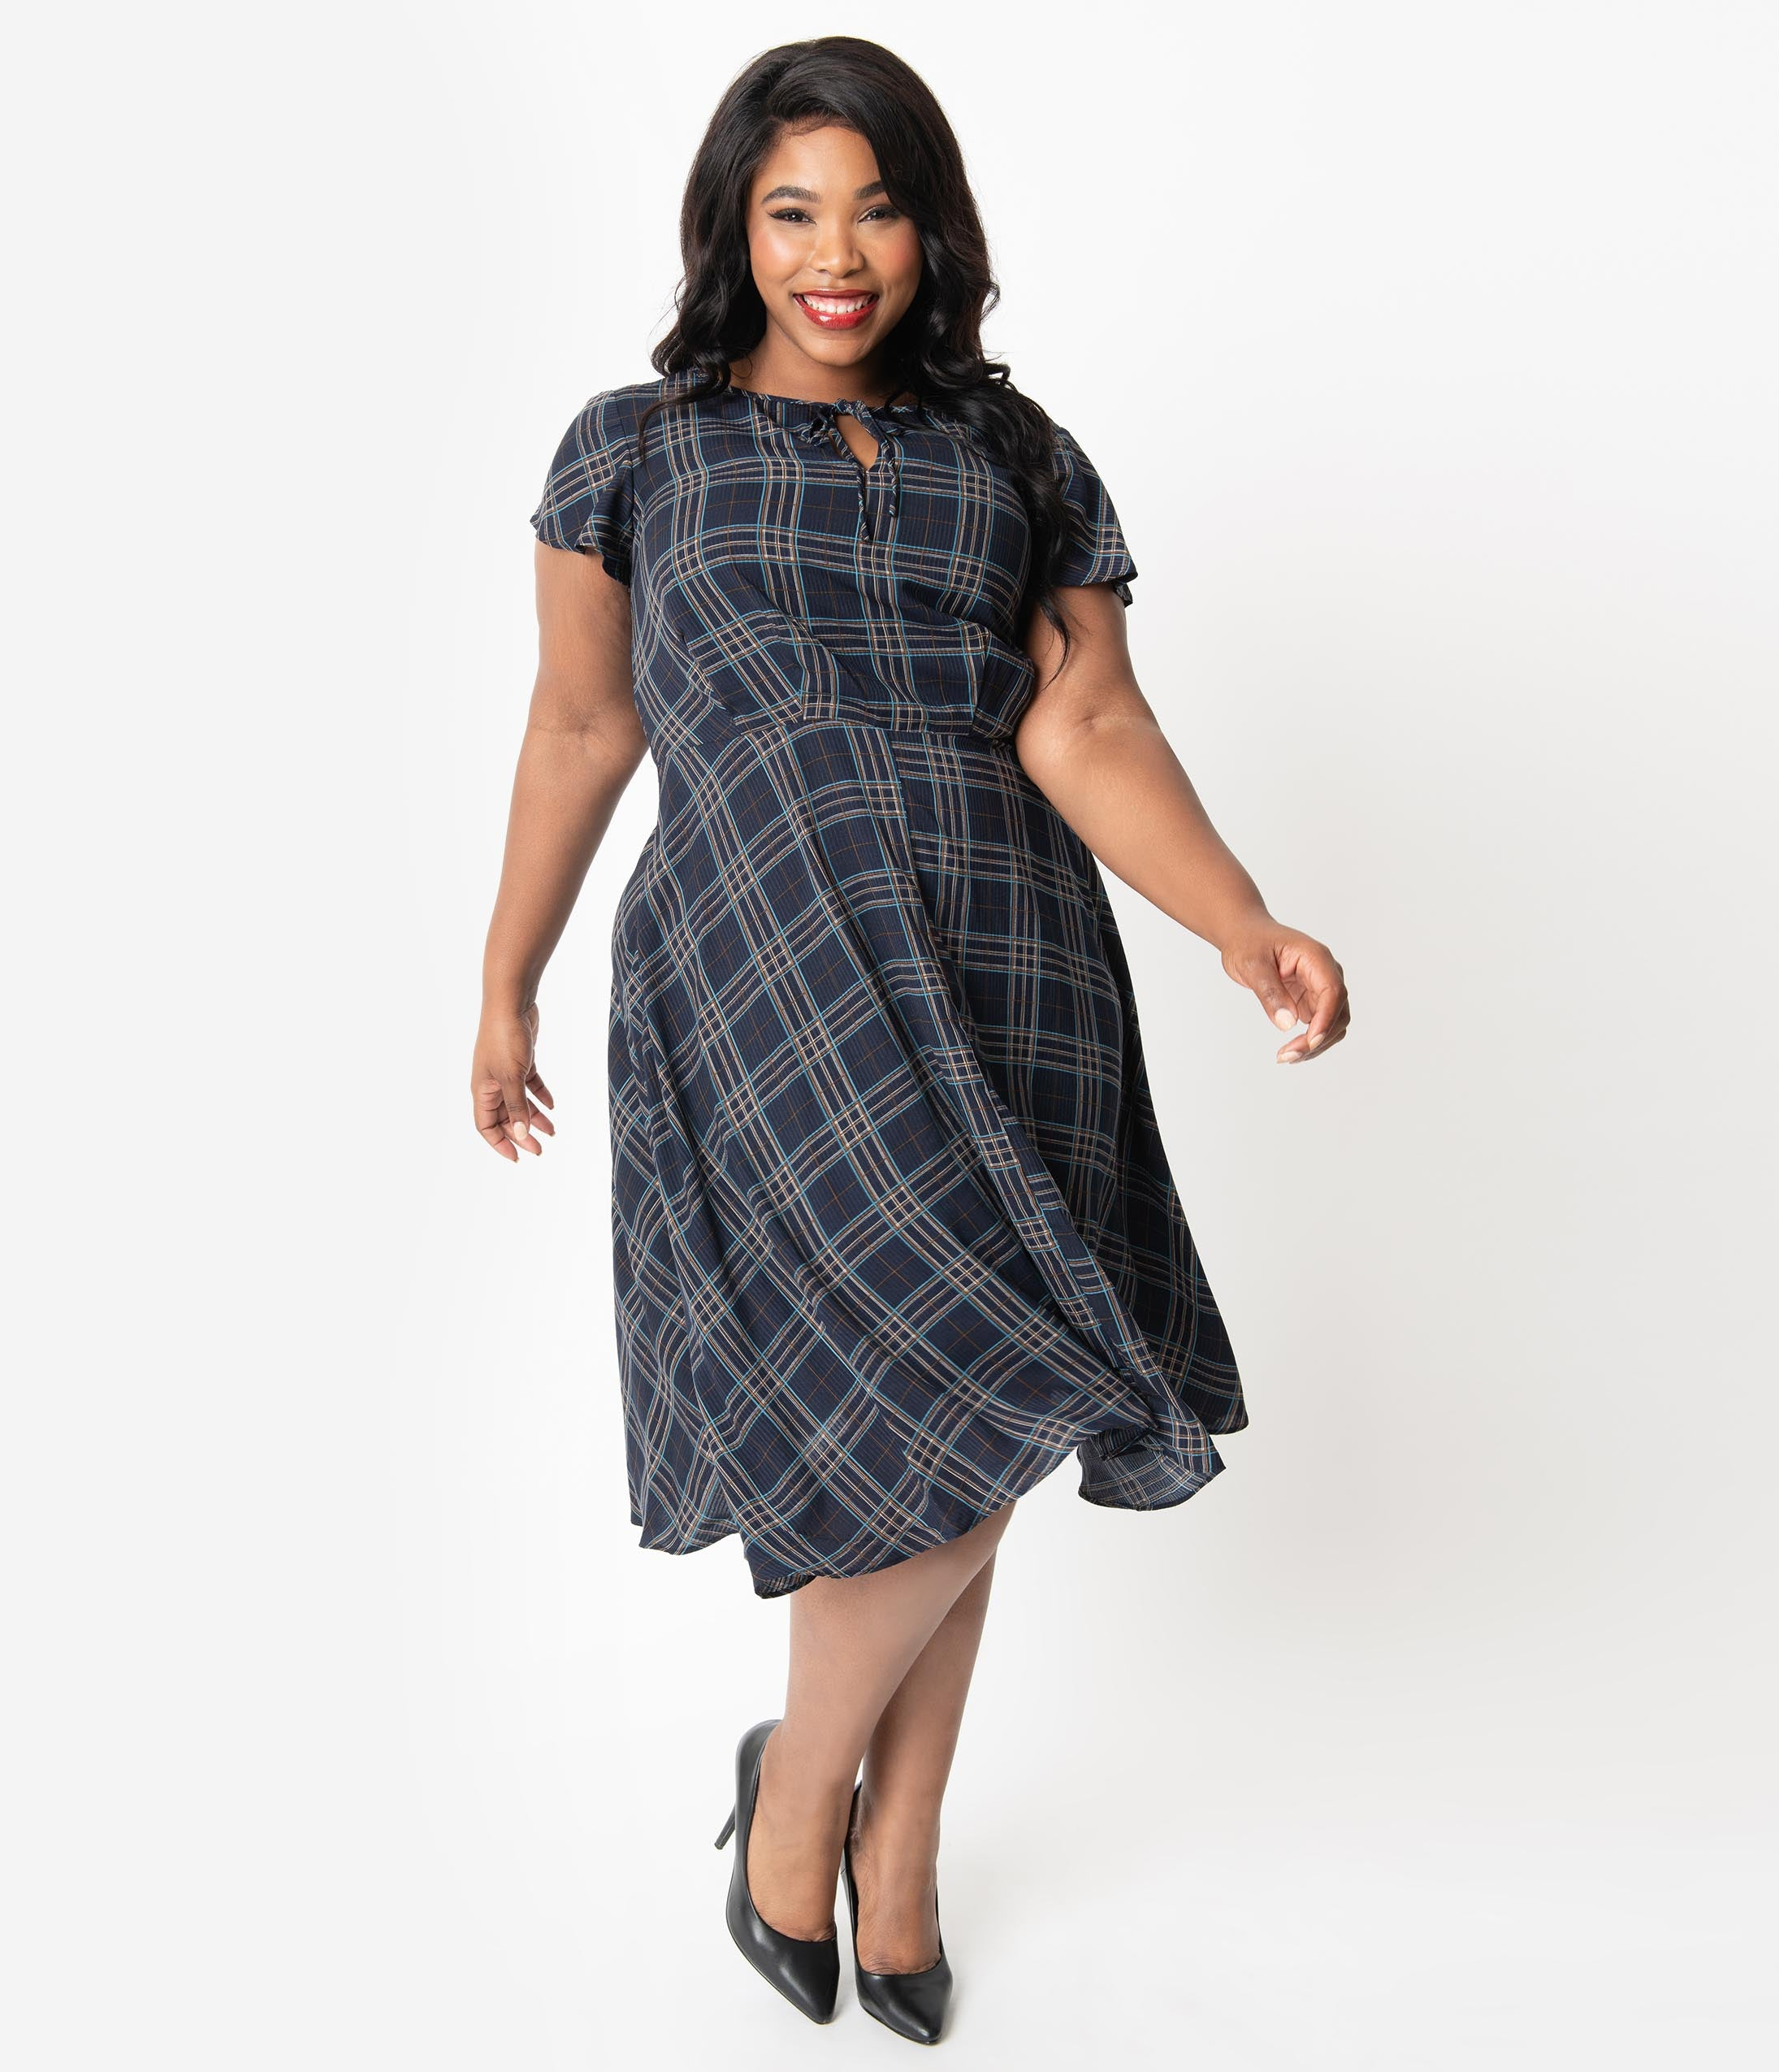 1940s Plus Size Dresses | Swing Dress, Tea Dress Unique Vintage Plus Size 1940S Style Blue Plaid Formosa Swing Dress $78.00 AT vintagedancer.com